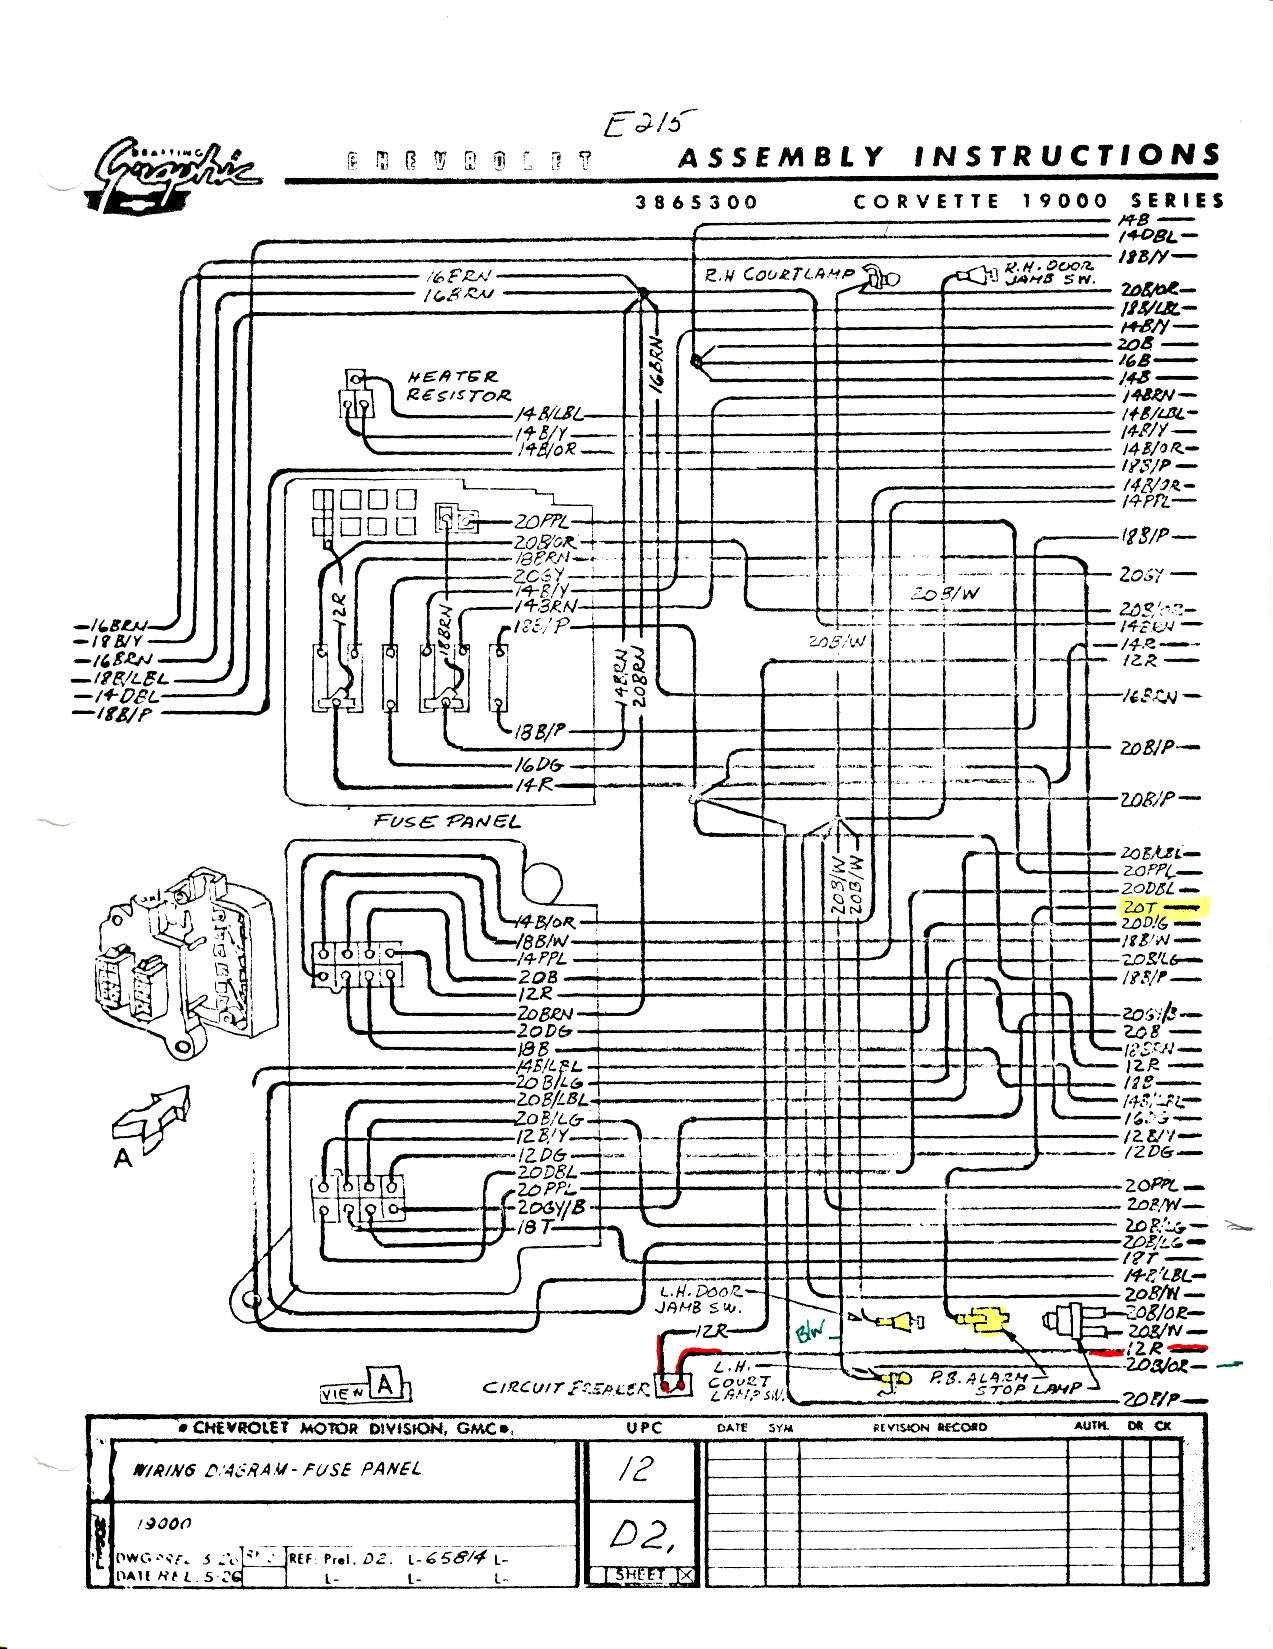 hight resolution of 1965 chevy corvette wiring diagram enthusiast wiring diagrams u2022 rh rasalibre co 65 corvette wiring diagram